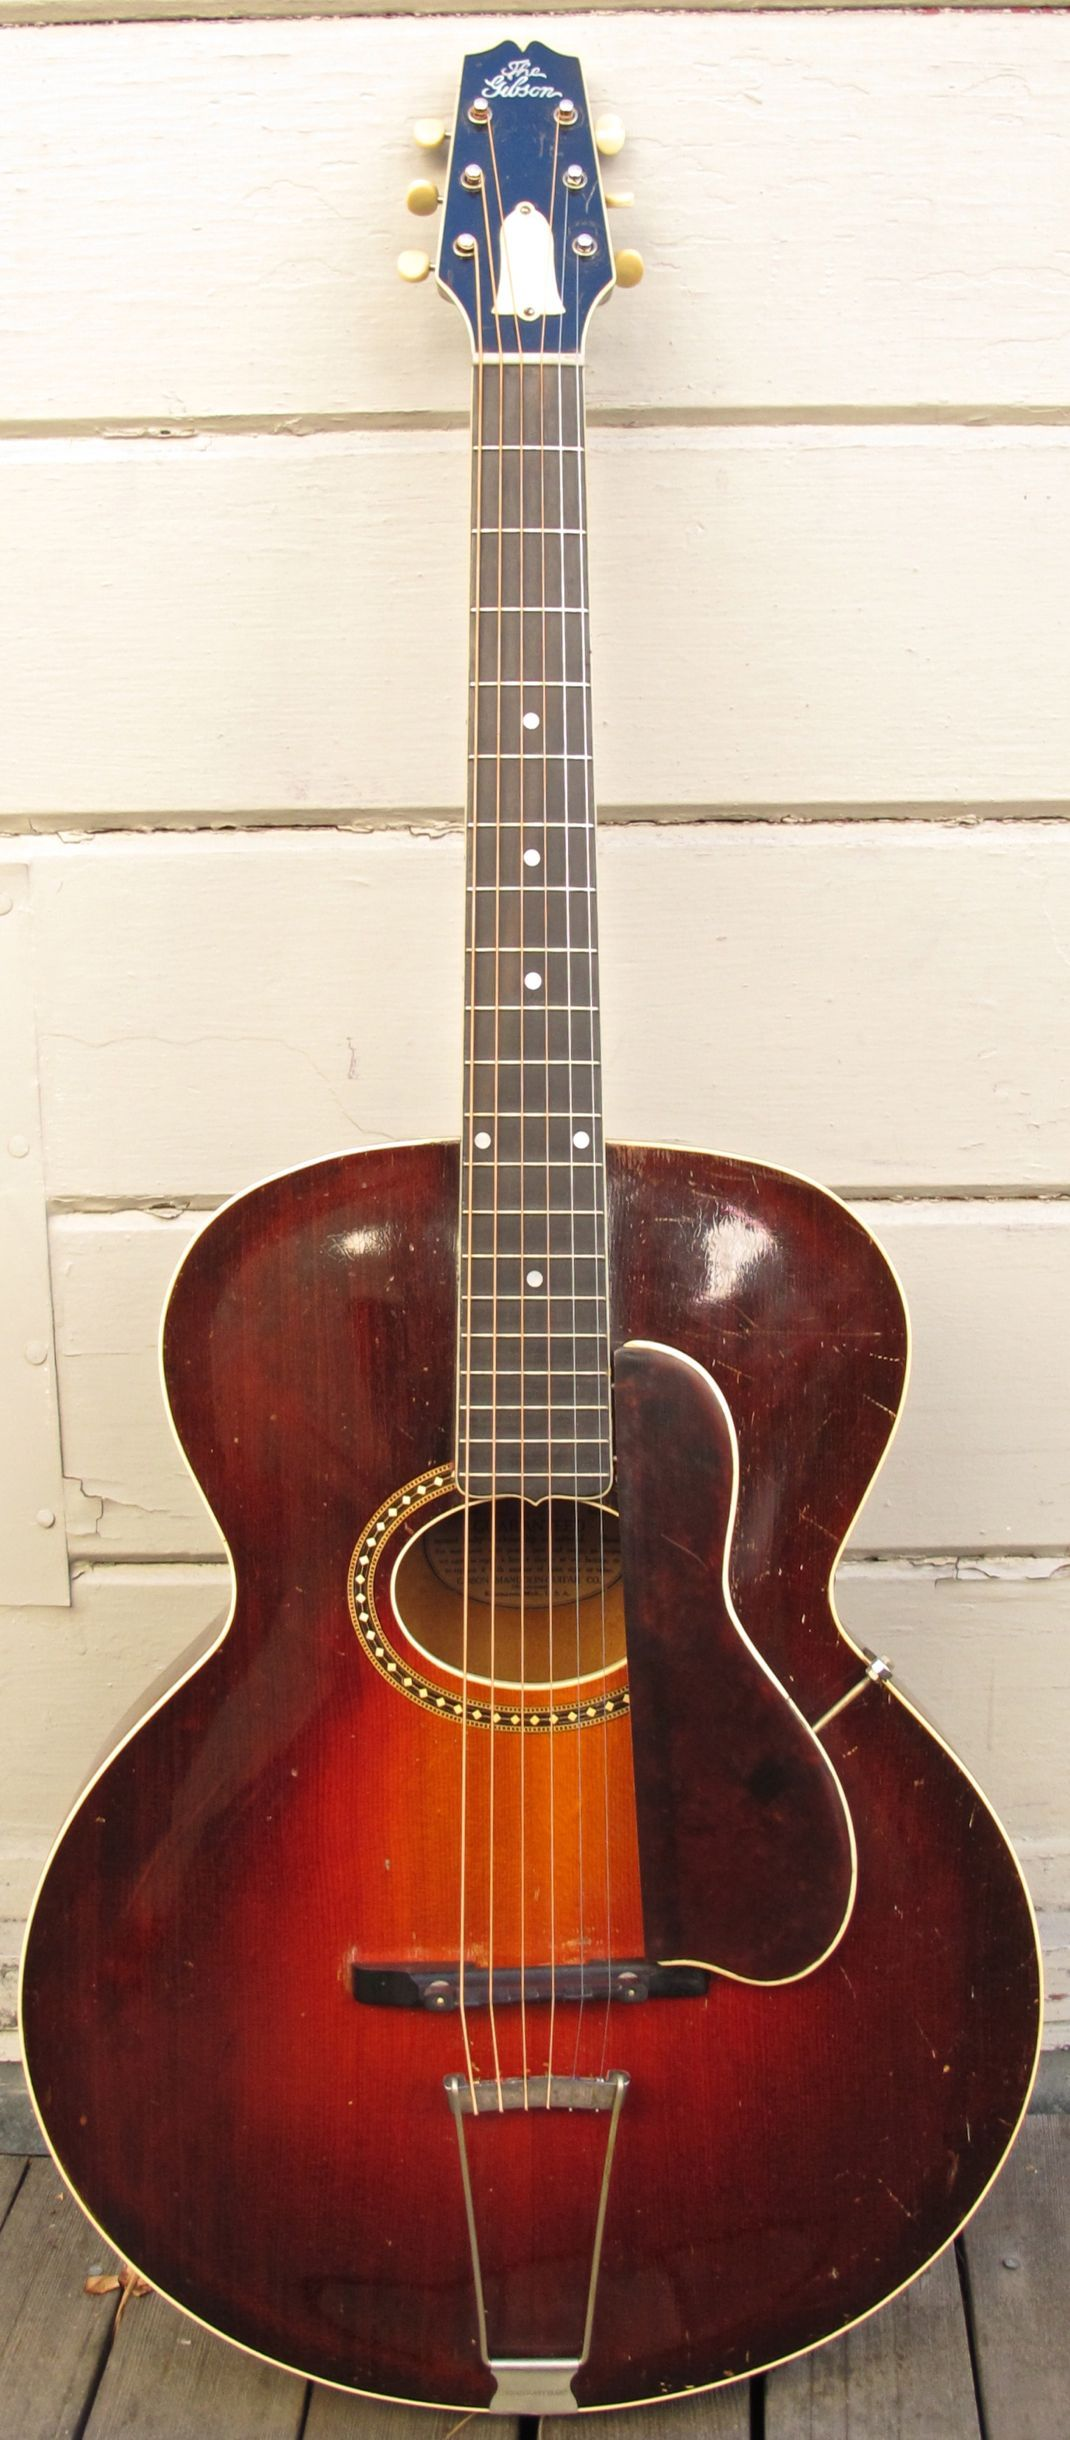 gibson l 4 archtop acoustic guitar vintage 1926 round hole archtop rare snakehead model. Black Bedroom Furniture Sets. Home Design Ideas